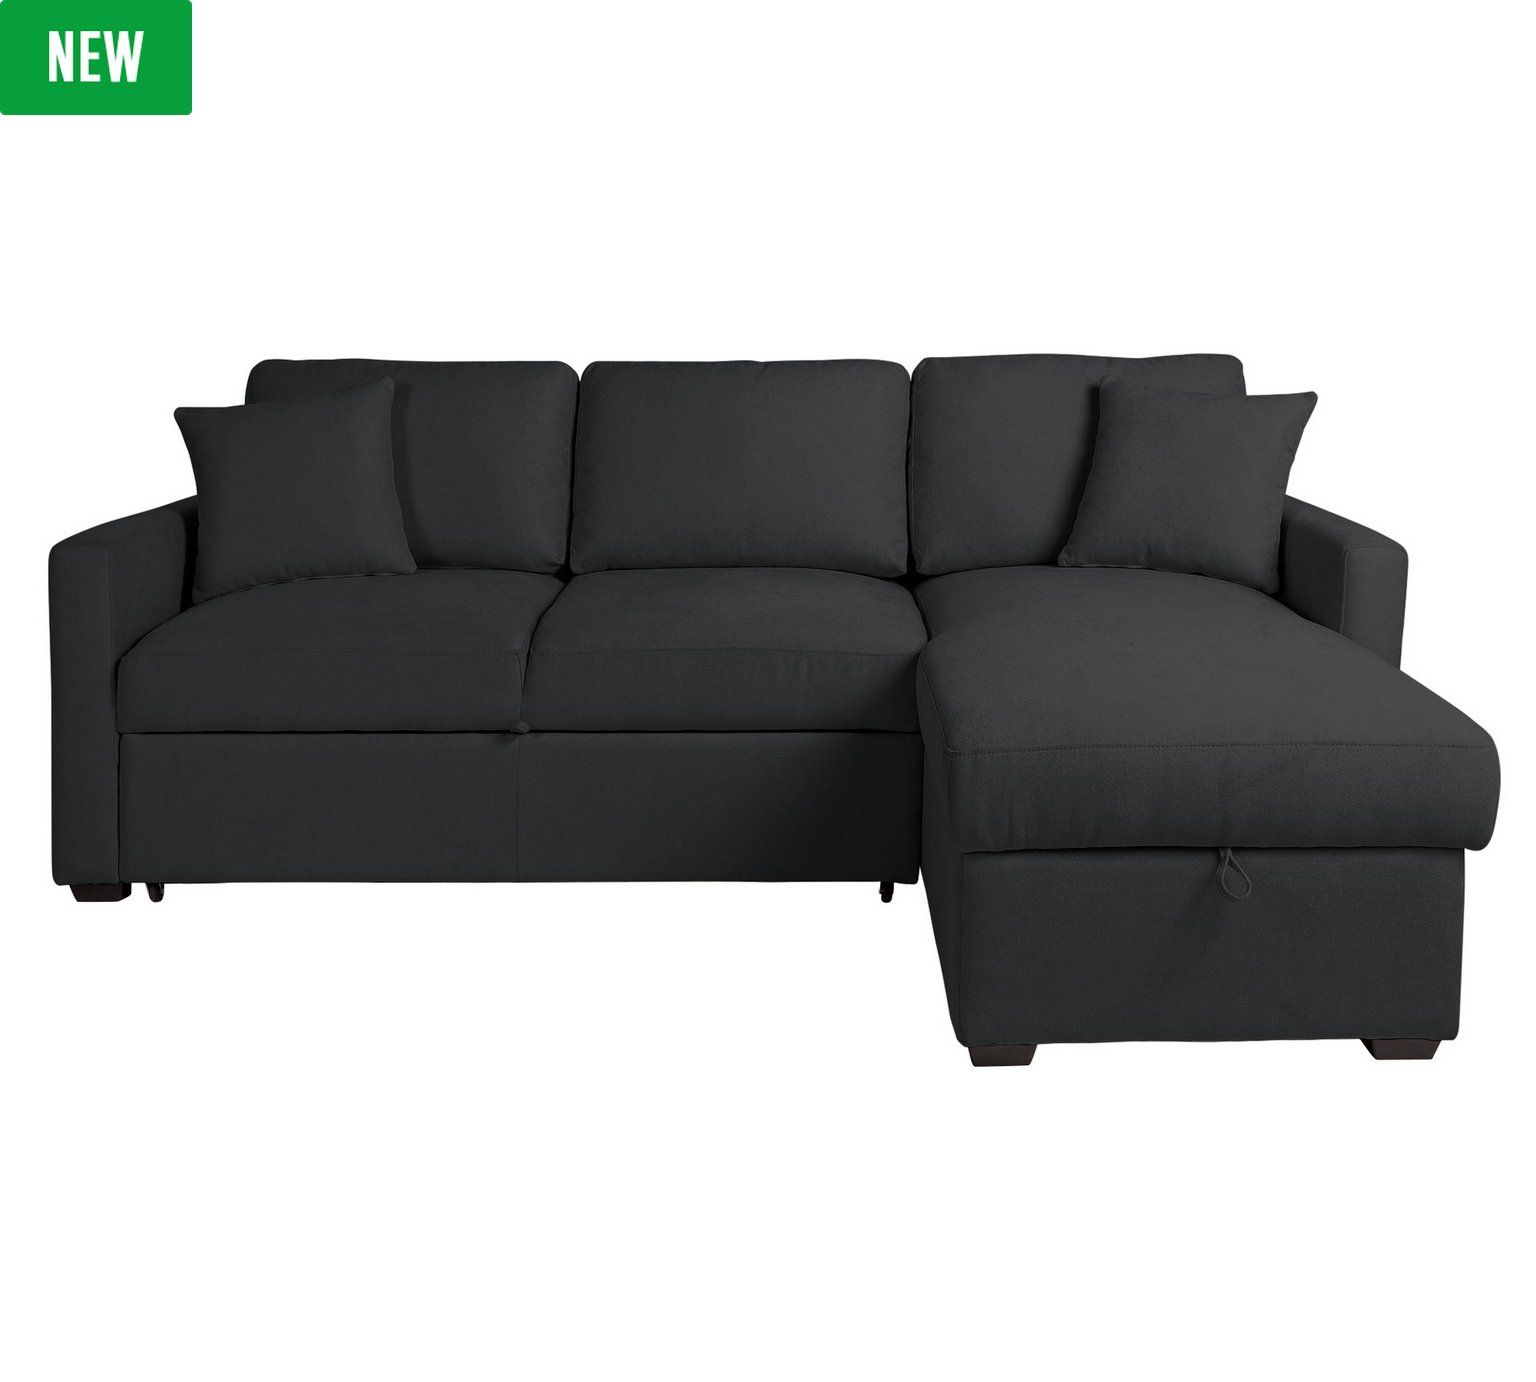 Buy Corner Sofa Bed Uk Buy Home Reagan Fabric Right Corner Chaise Sofa Bed Charcoal At